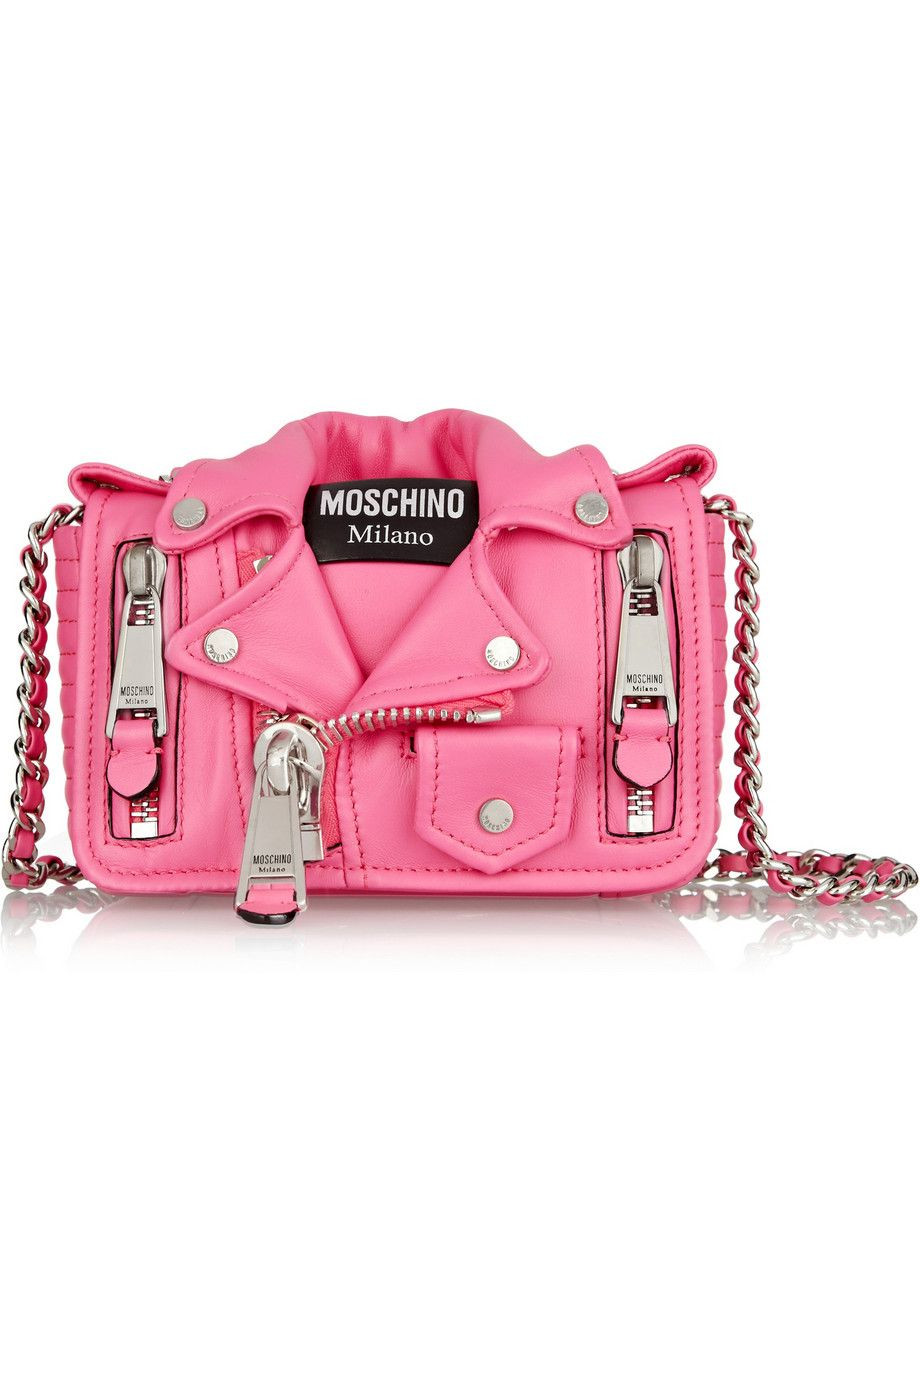 Moschino | Leather Jacket shoulder bag | NET-A-PORTER.COM